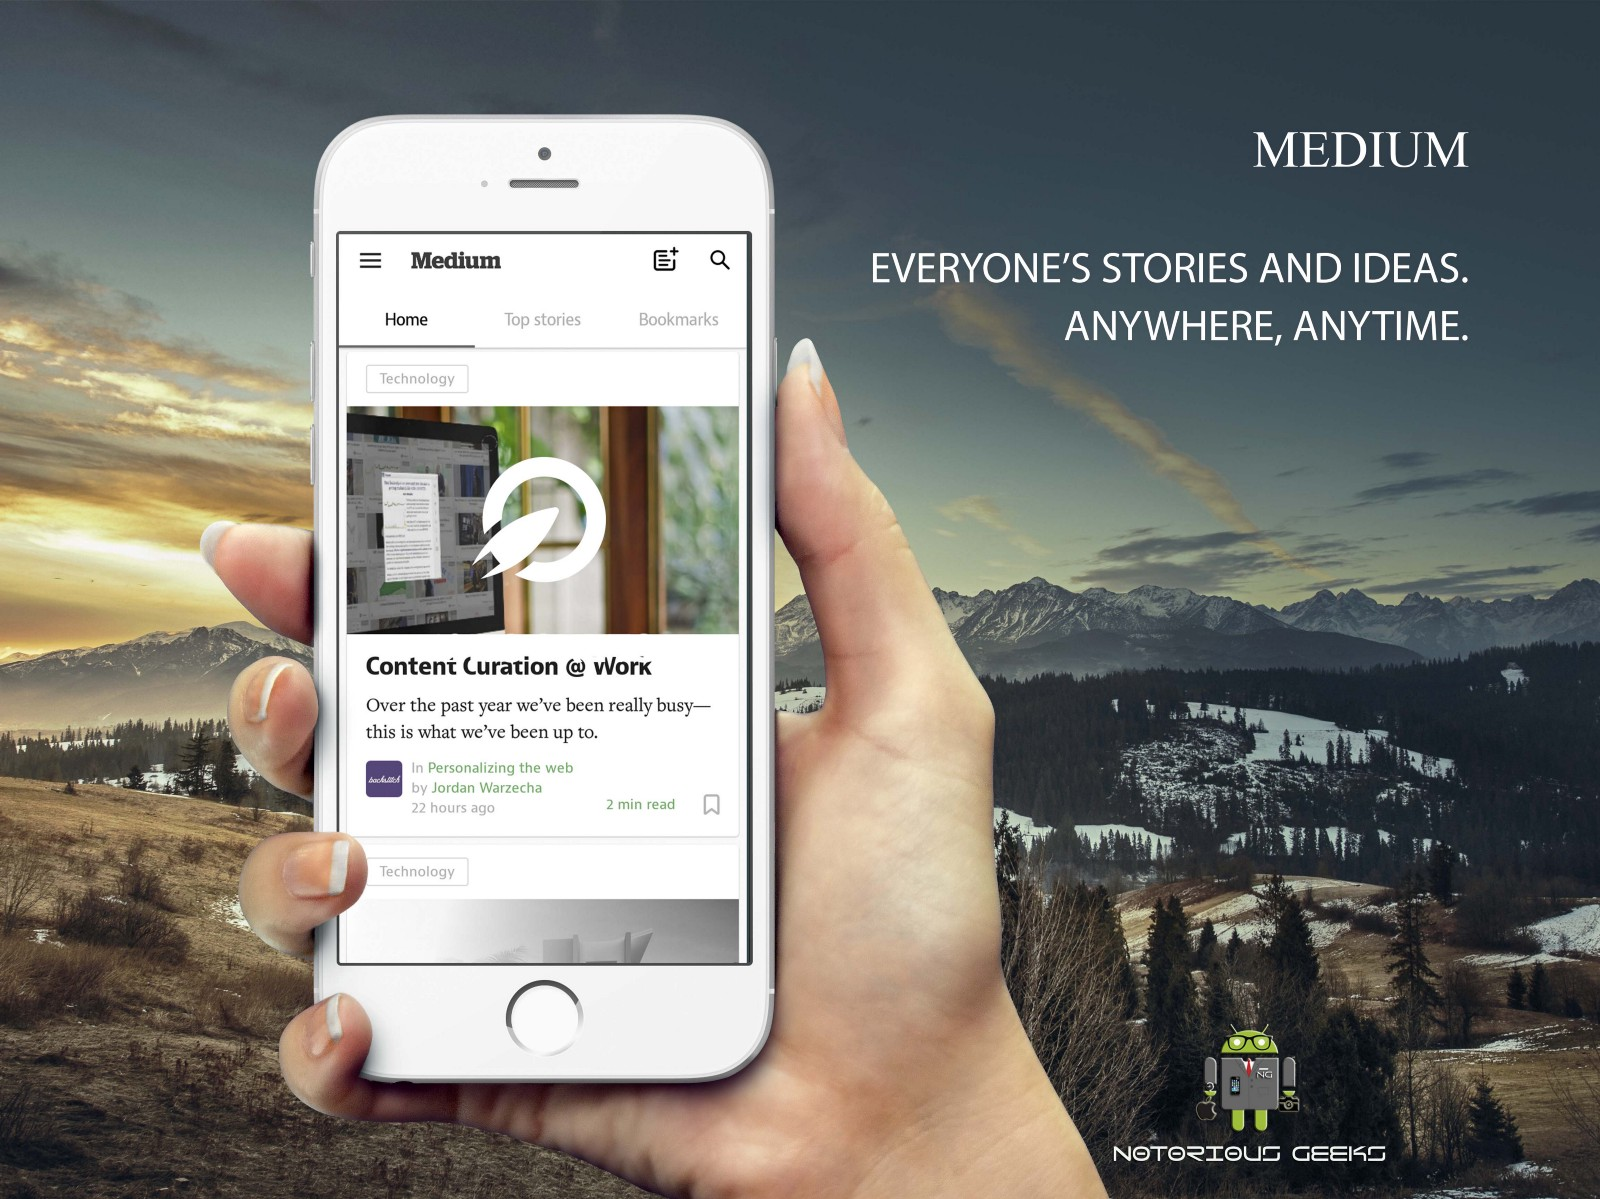 Medium A Simple Editor To Publish Your Ideas Blogs On The Go It Comes With Set Of Features Adding Images Links In Pleasing Interface